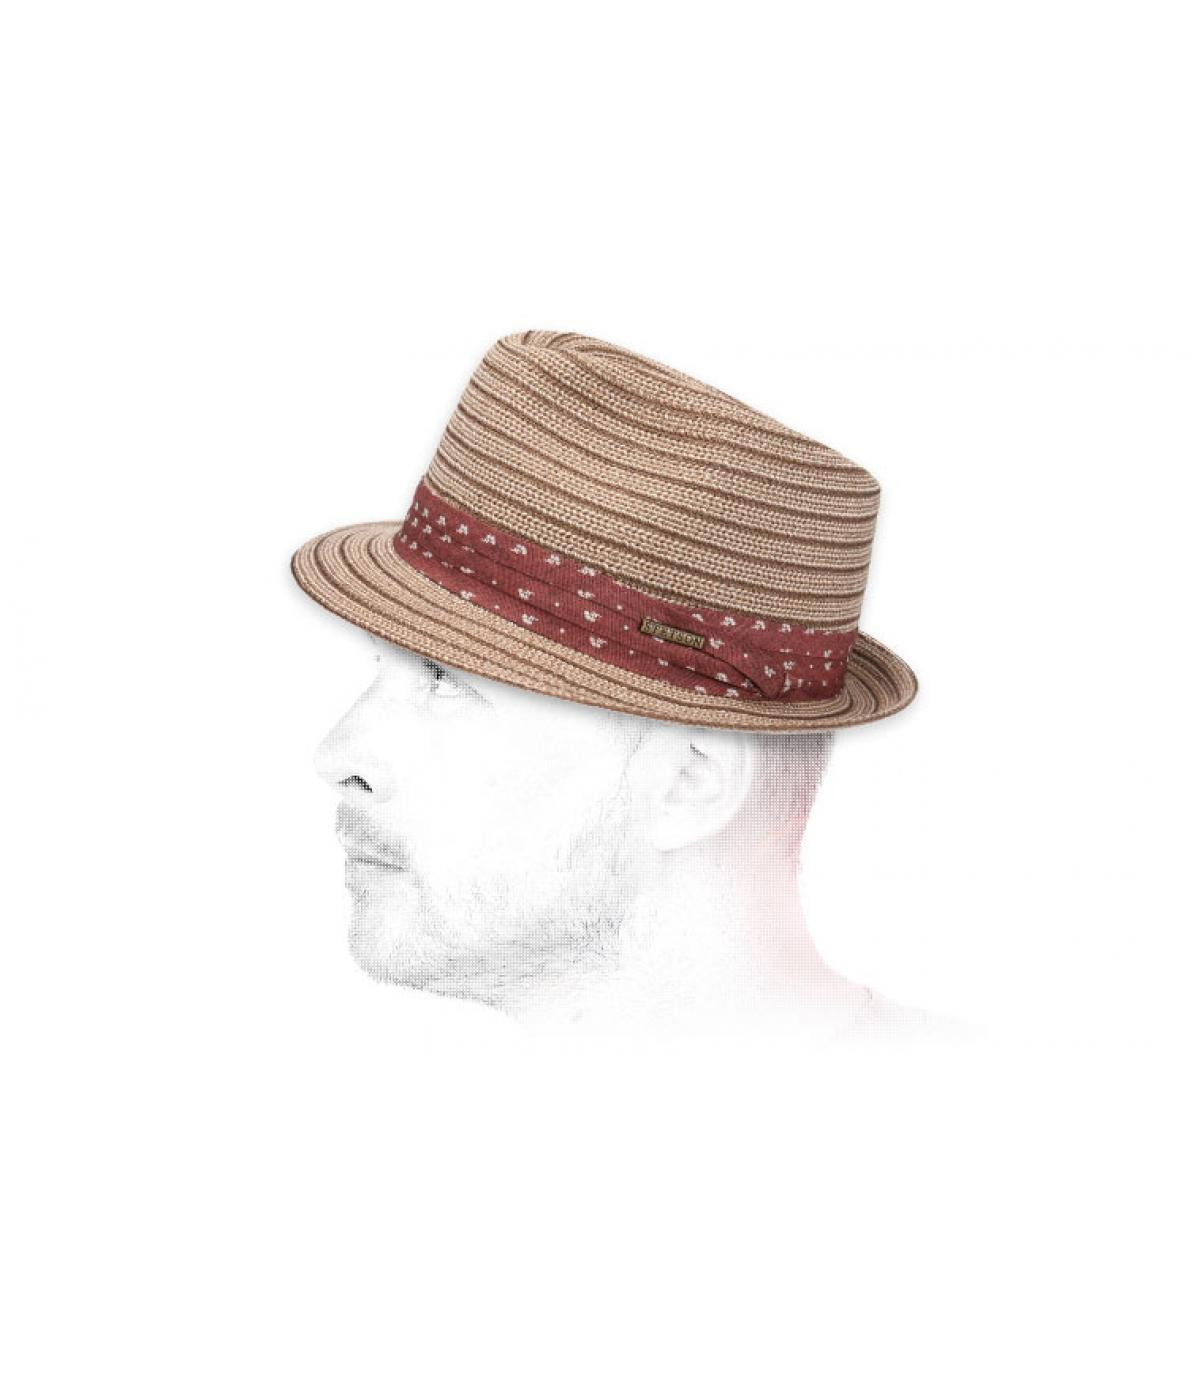 Stetson two coloured trilby